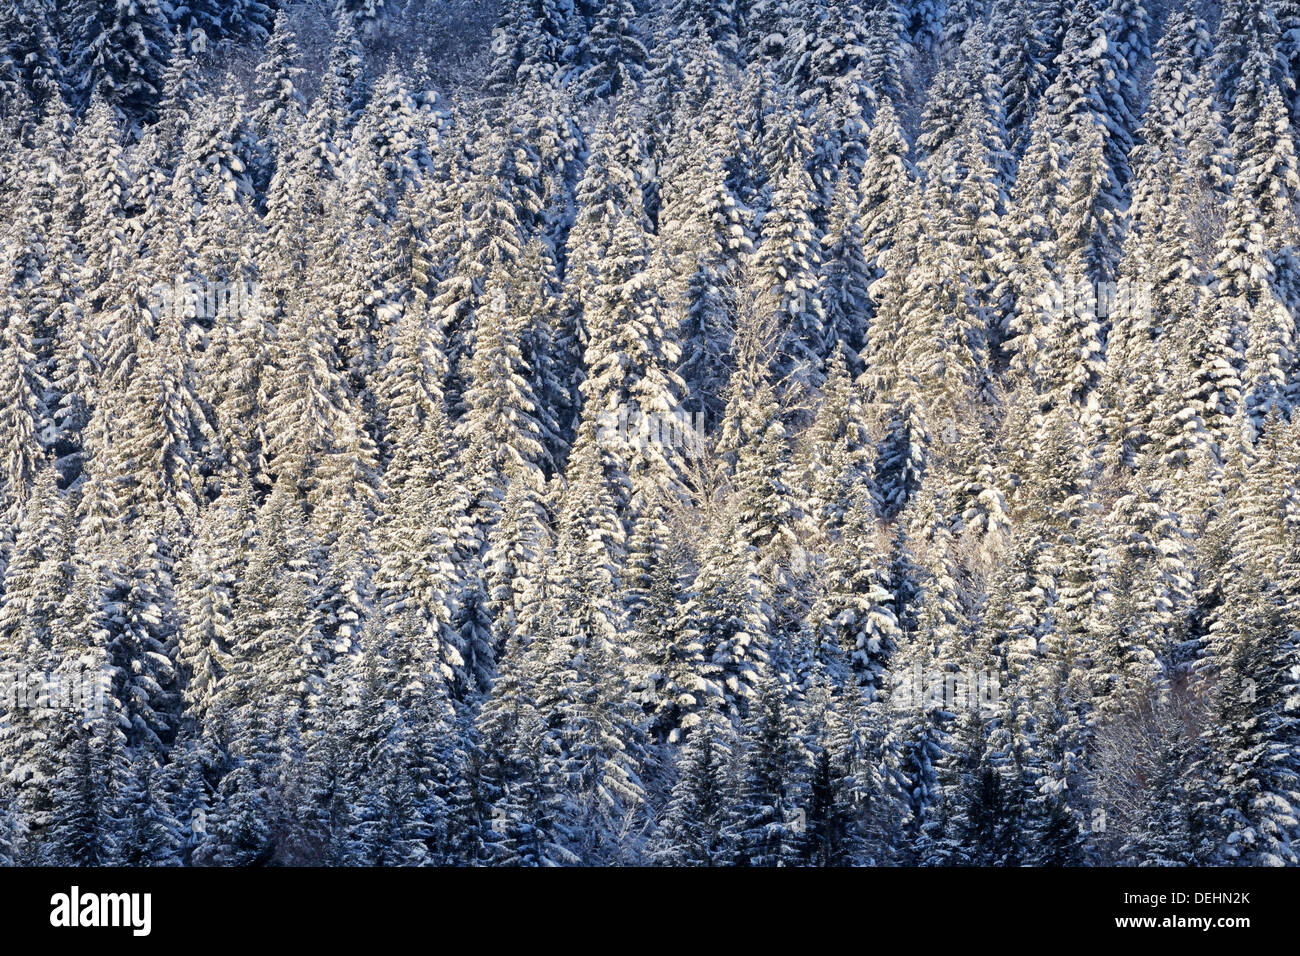 View on a mountain landscape with snow covered pines and a streak of sunlight. - Stock Image